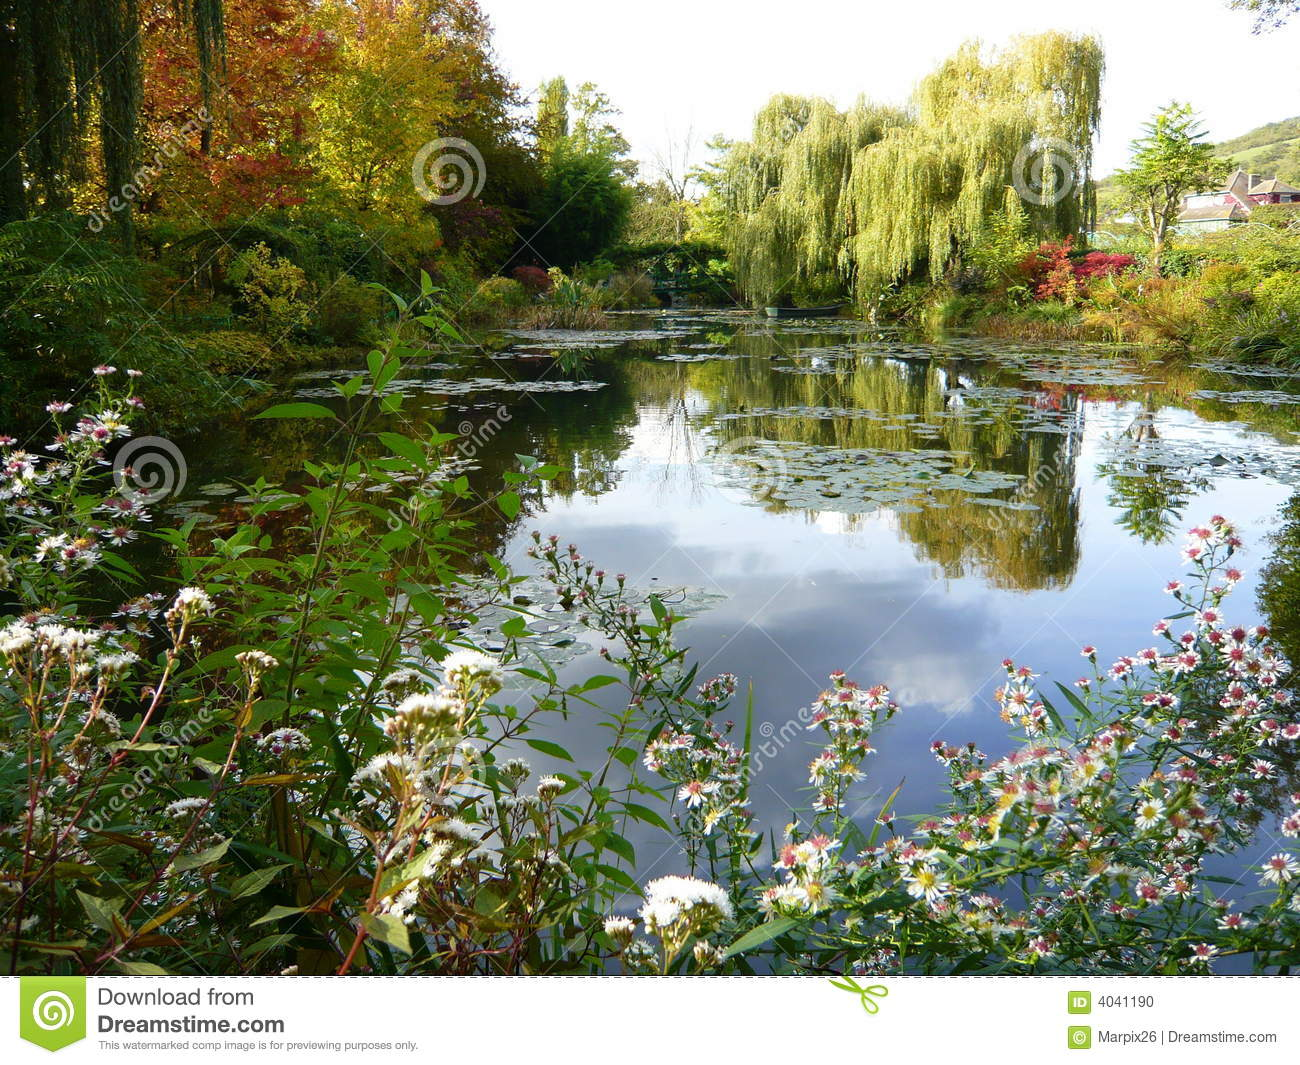 Monet 39 s garden giverny france stock photo image of home pond 4041190 for Monet s garden france